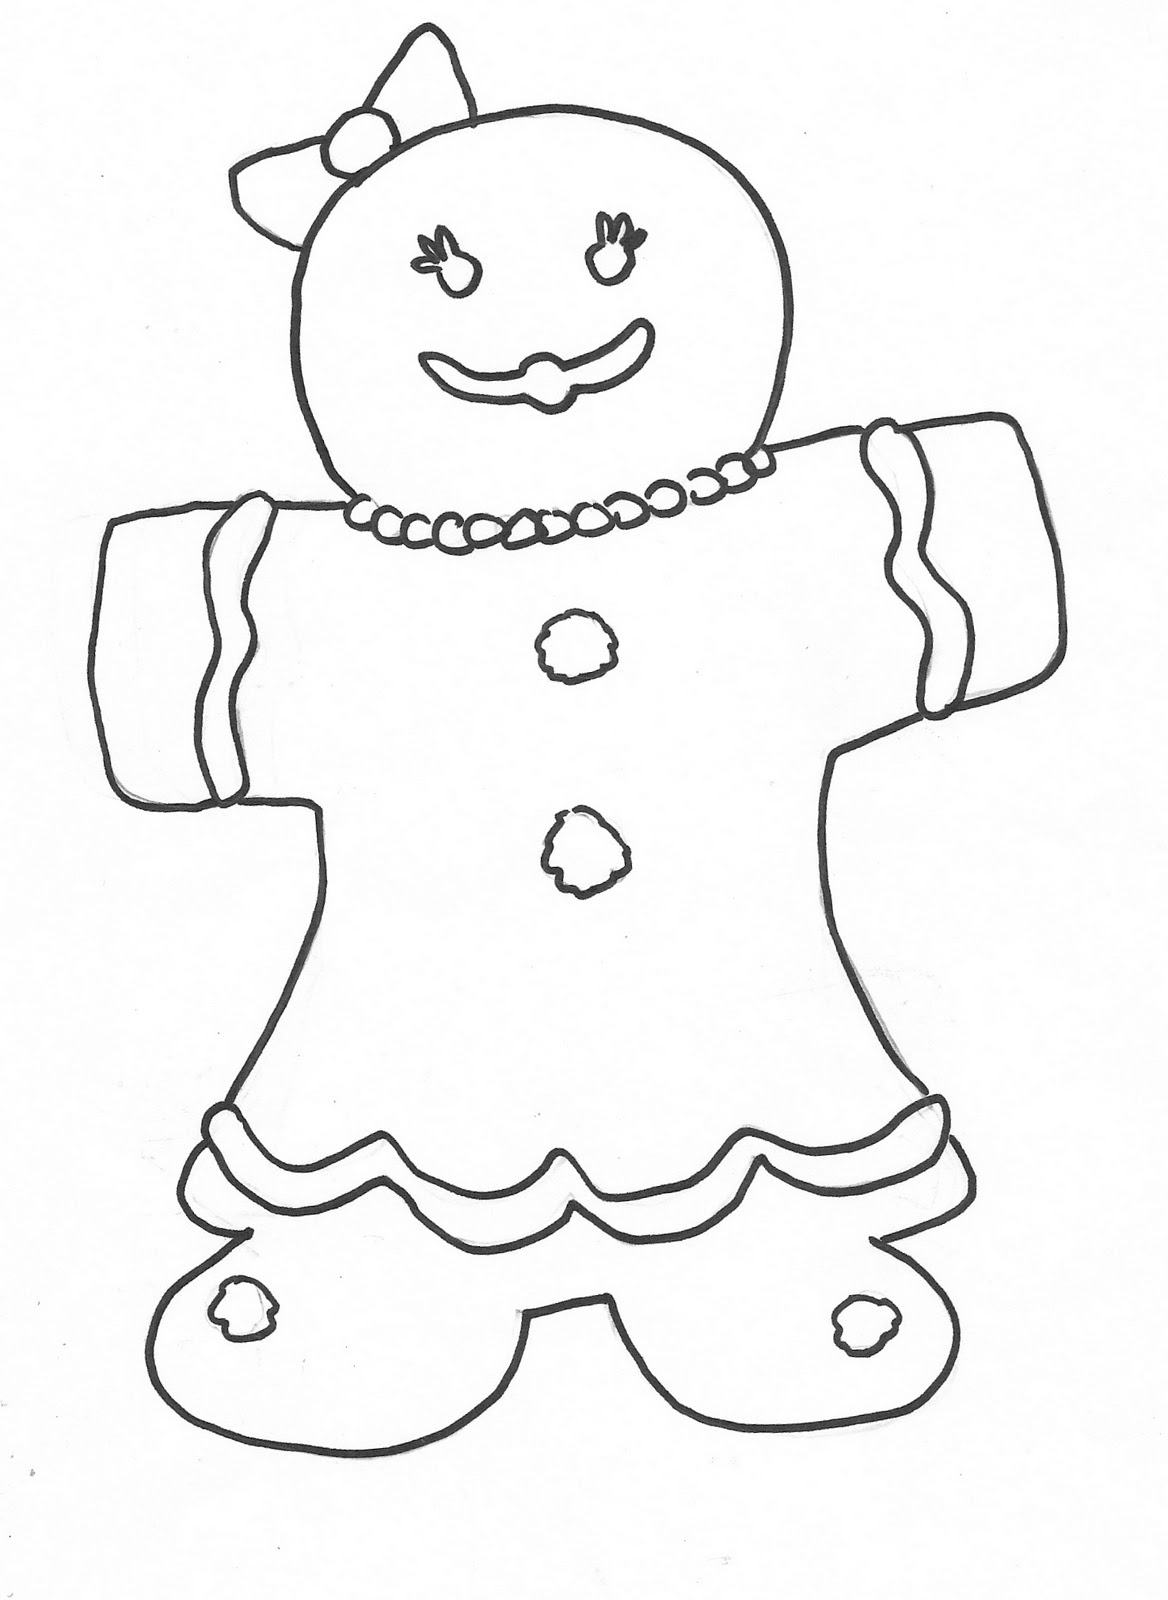 ginger man coloring pages - photo#27